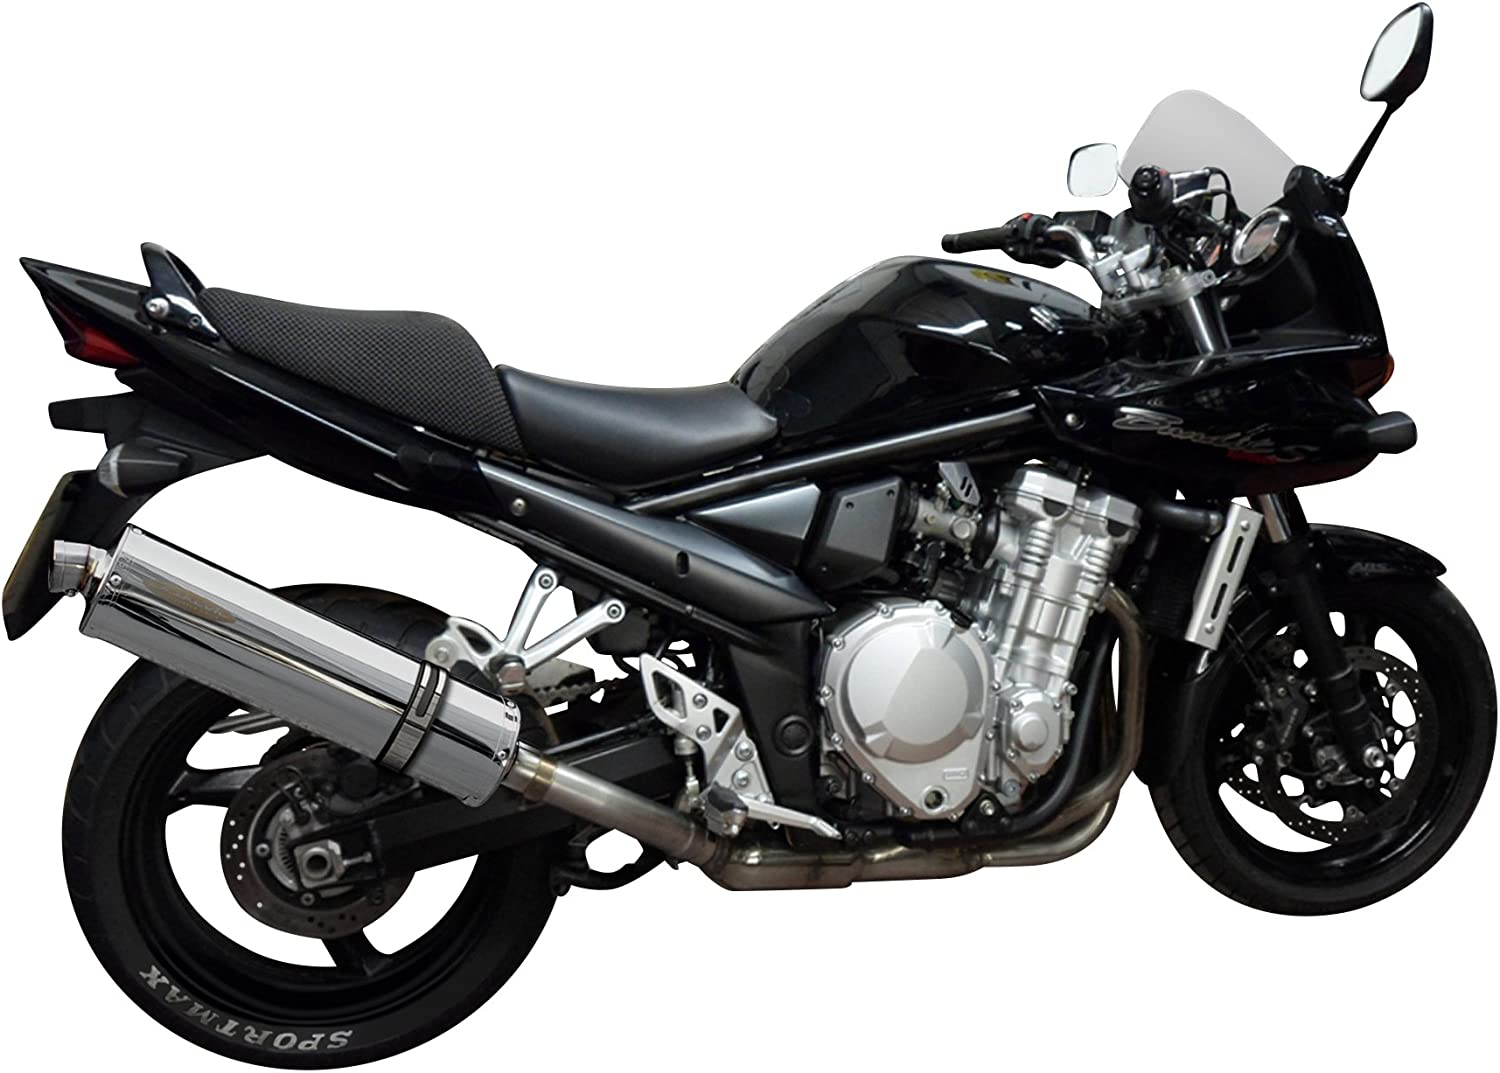 Delkevic Aftermarket Slip On compatible with Suzuki GSF1250 Bandit 18 Stainless Steel Oval Muffler Exhaust 07-09 /& 16